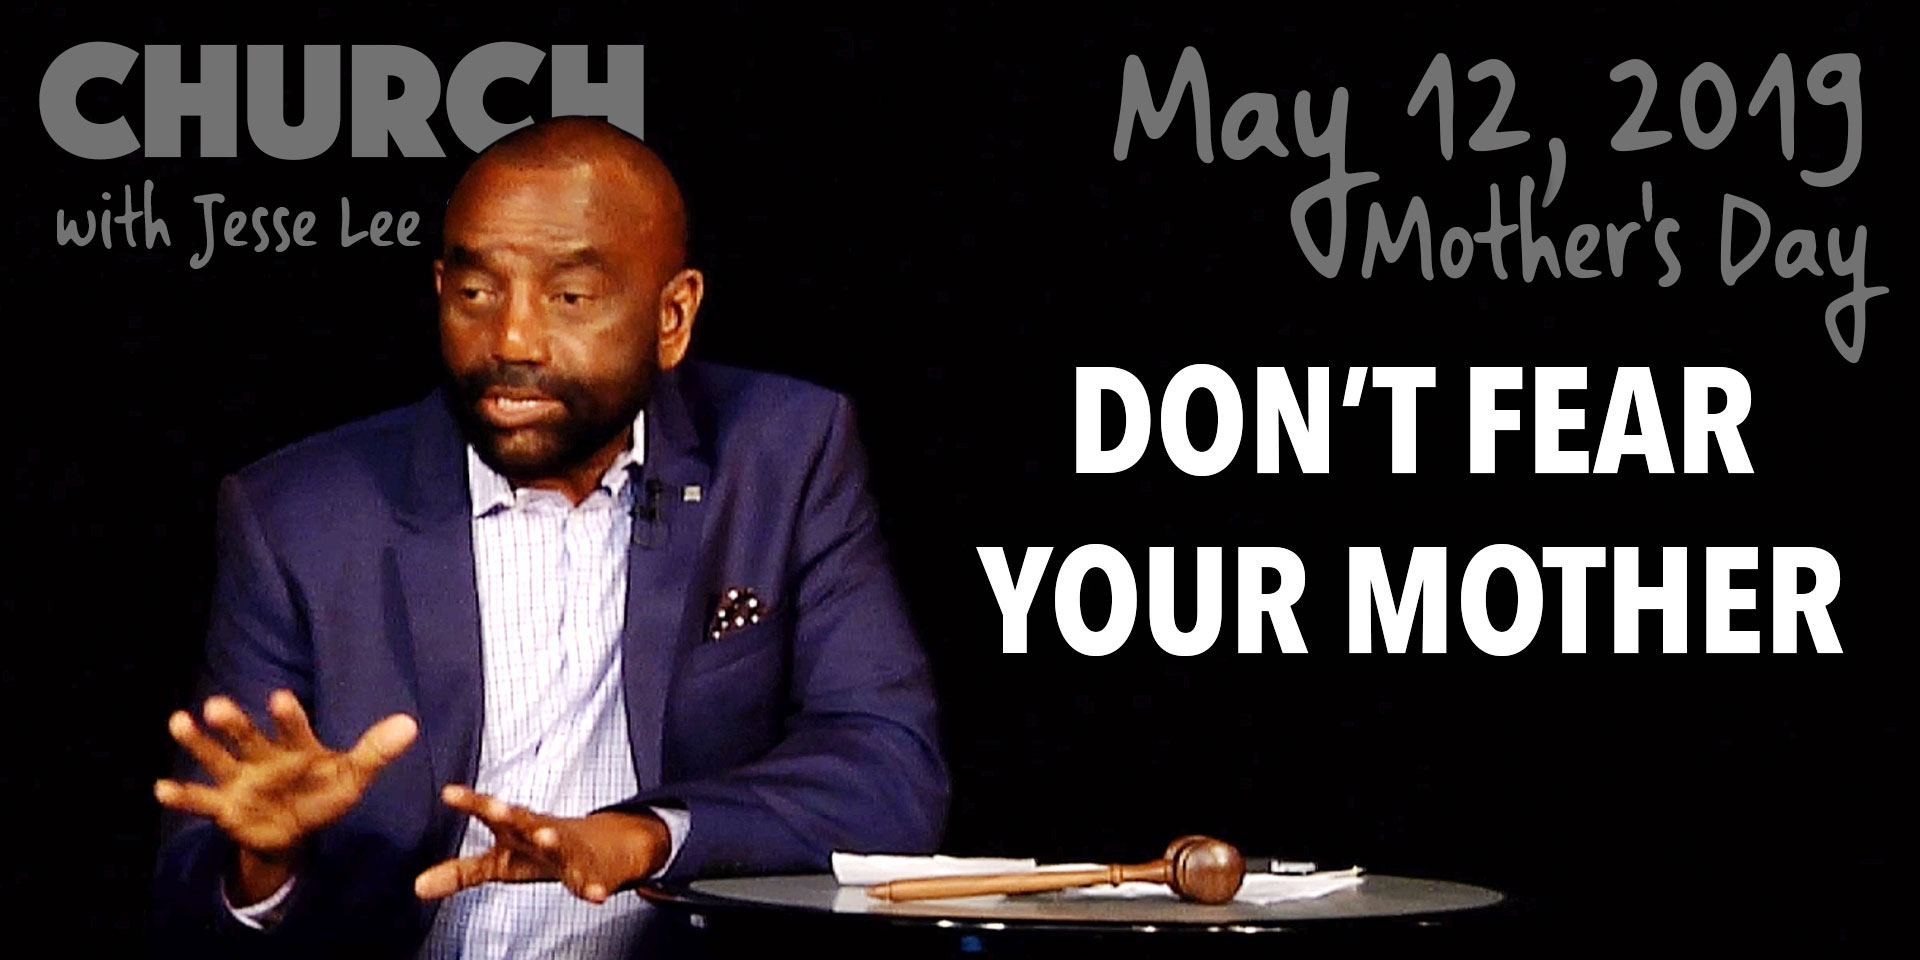 Don't Fear Your Mother. (Mother's Day Church, May 12, 2019)